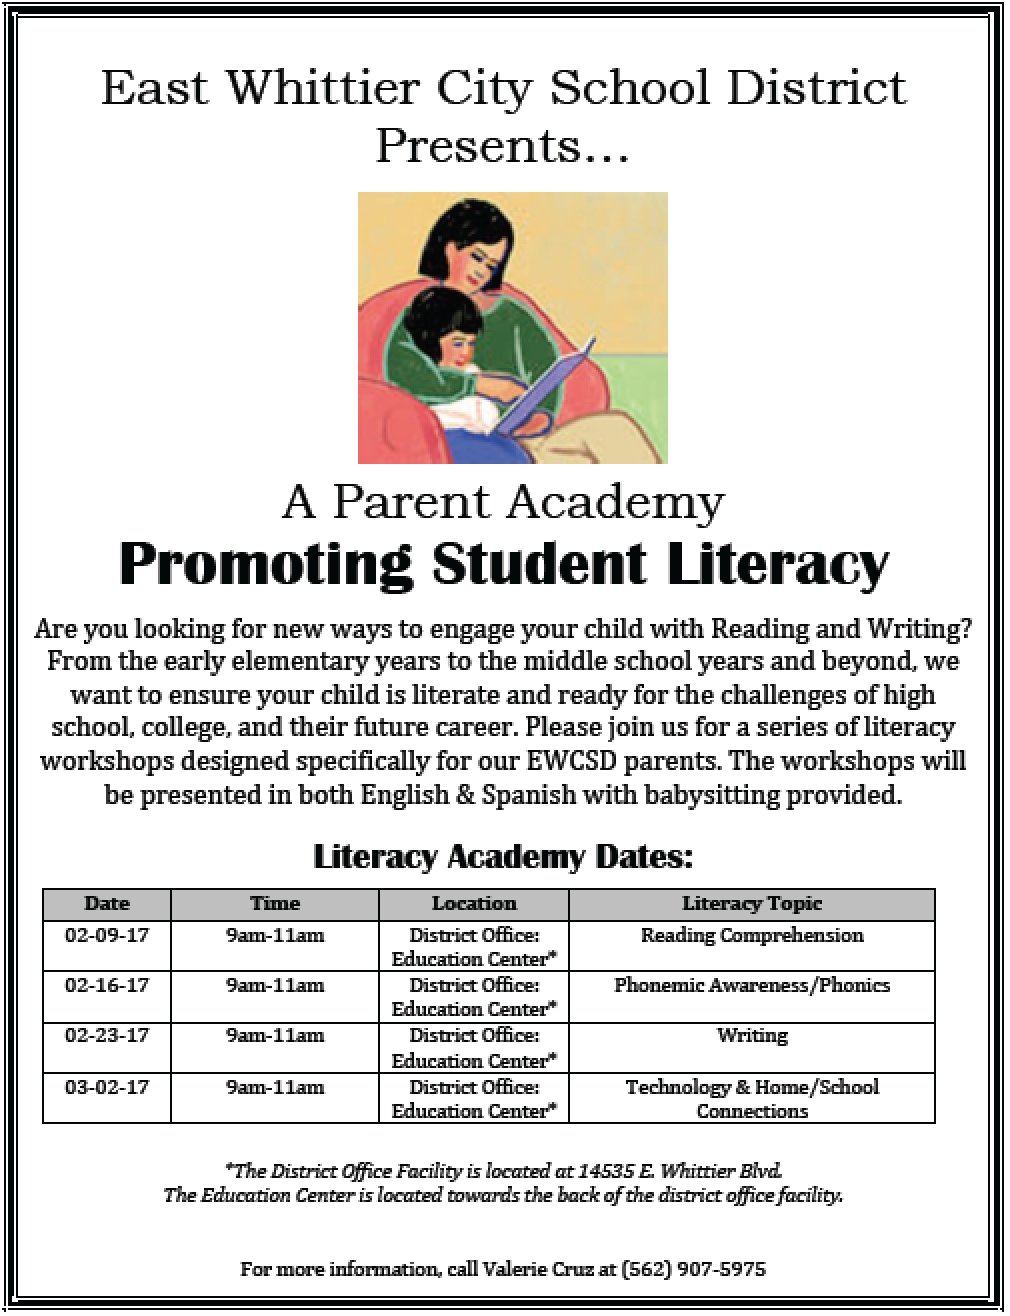 Promoting Student Literacy schedule in English